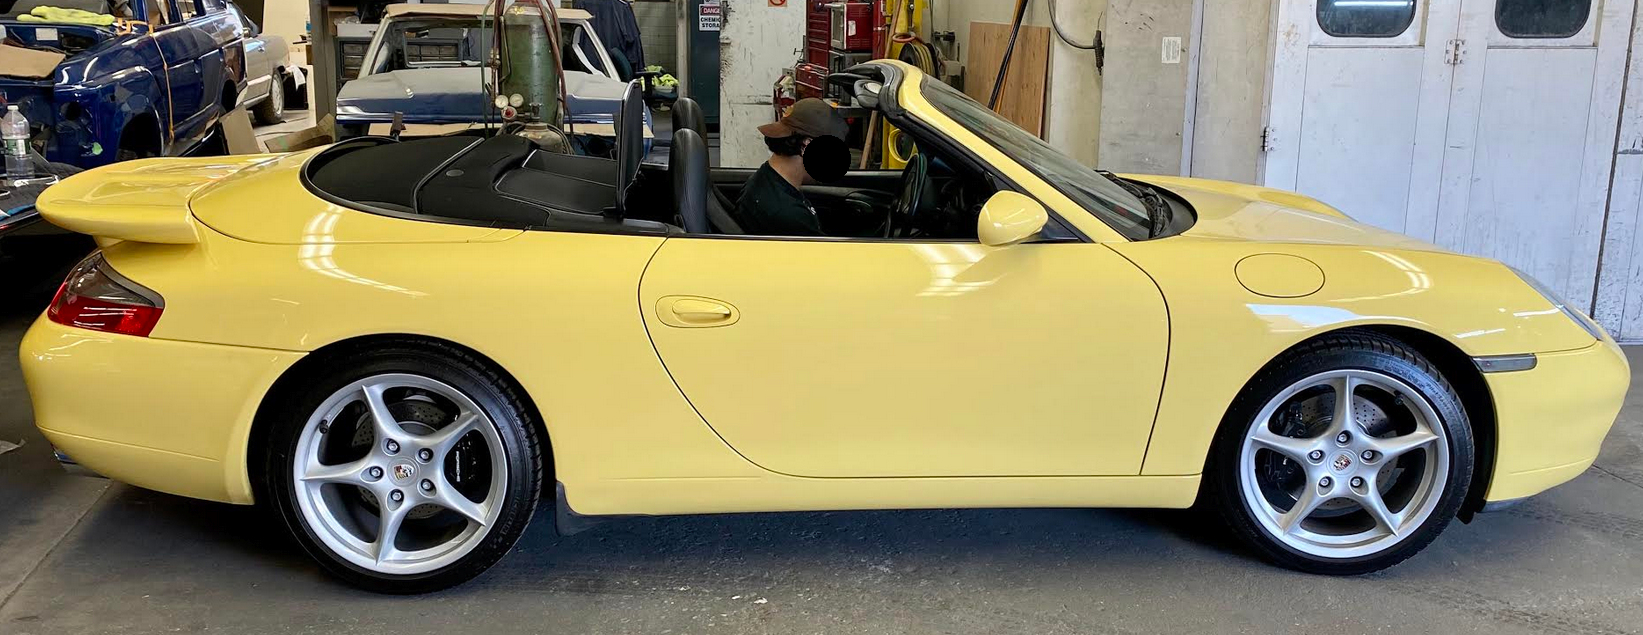 Darus rear wing spoiler for Porsche 996 by Jacquemond